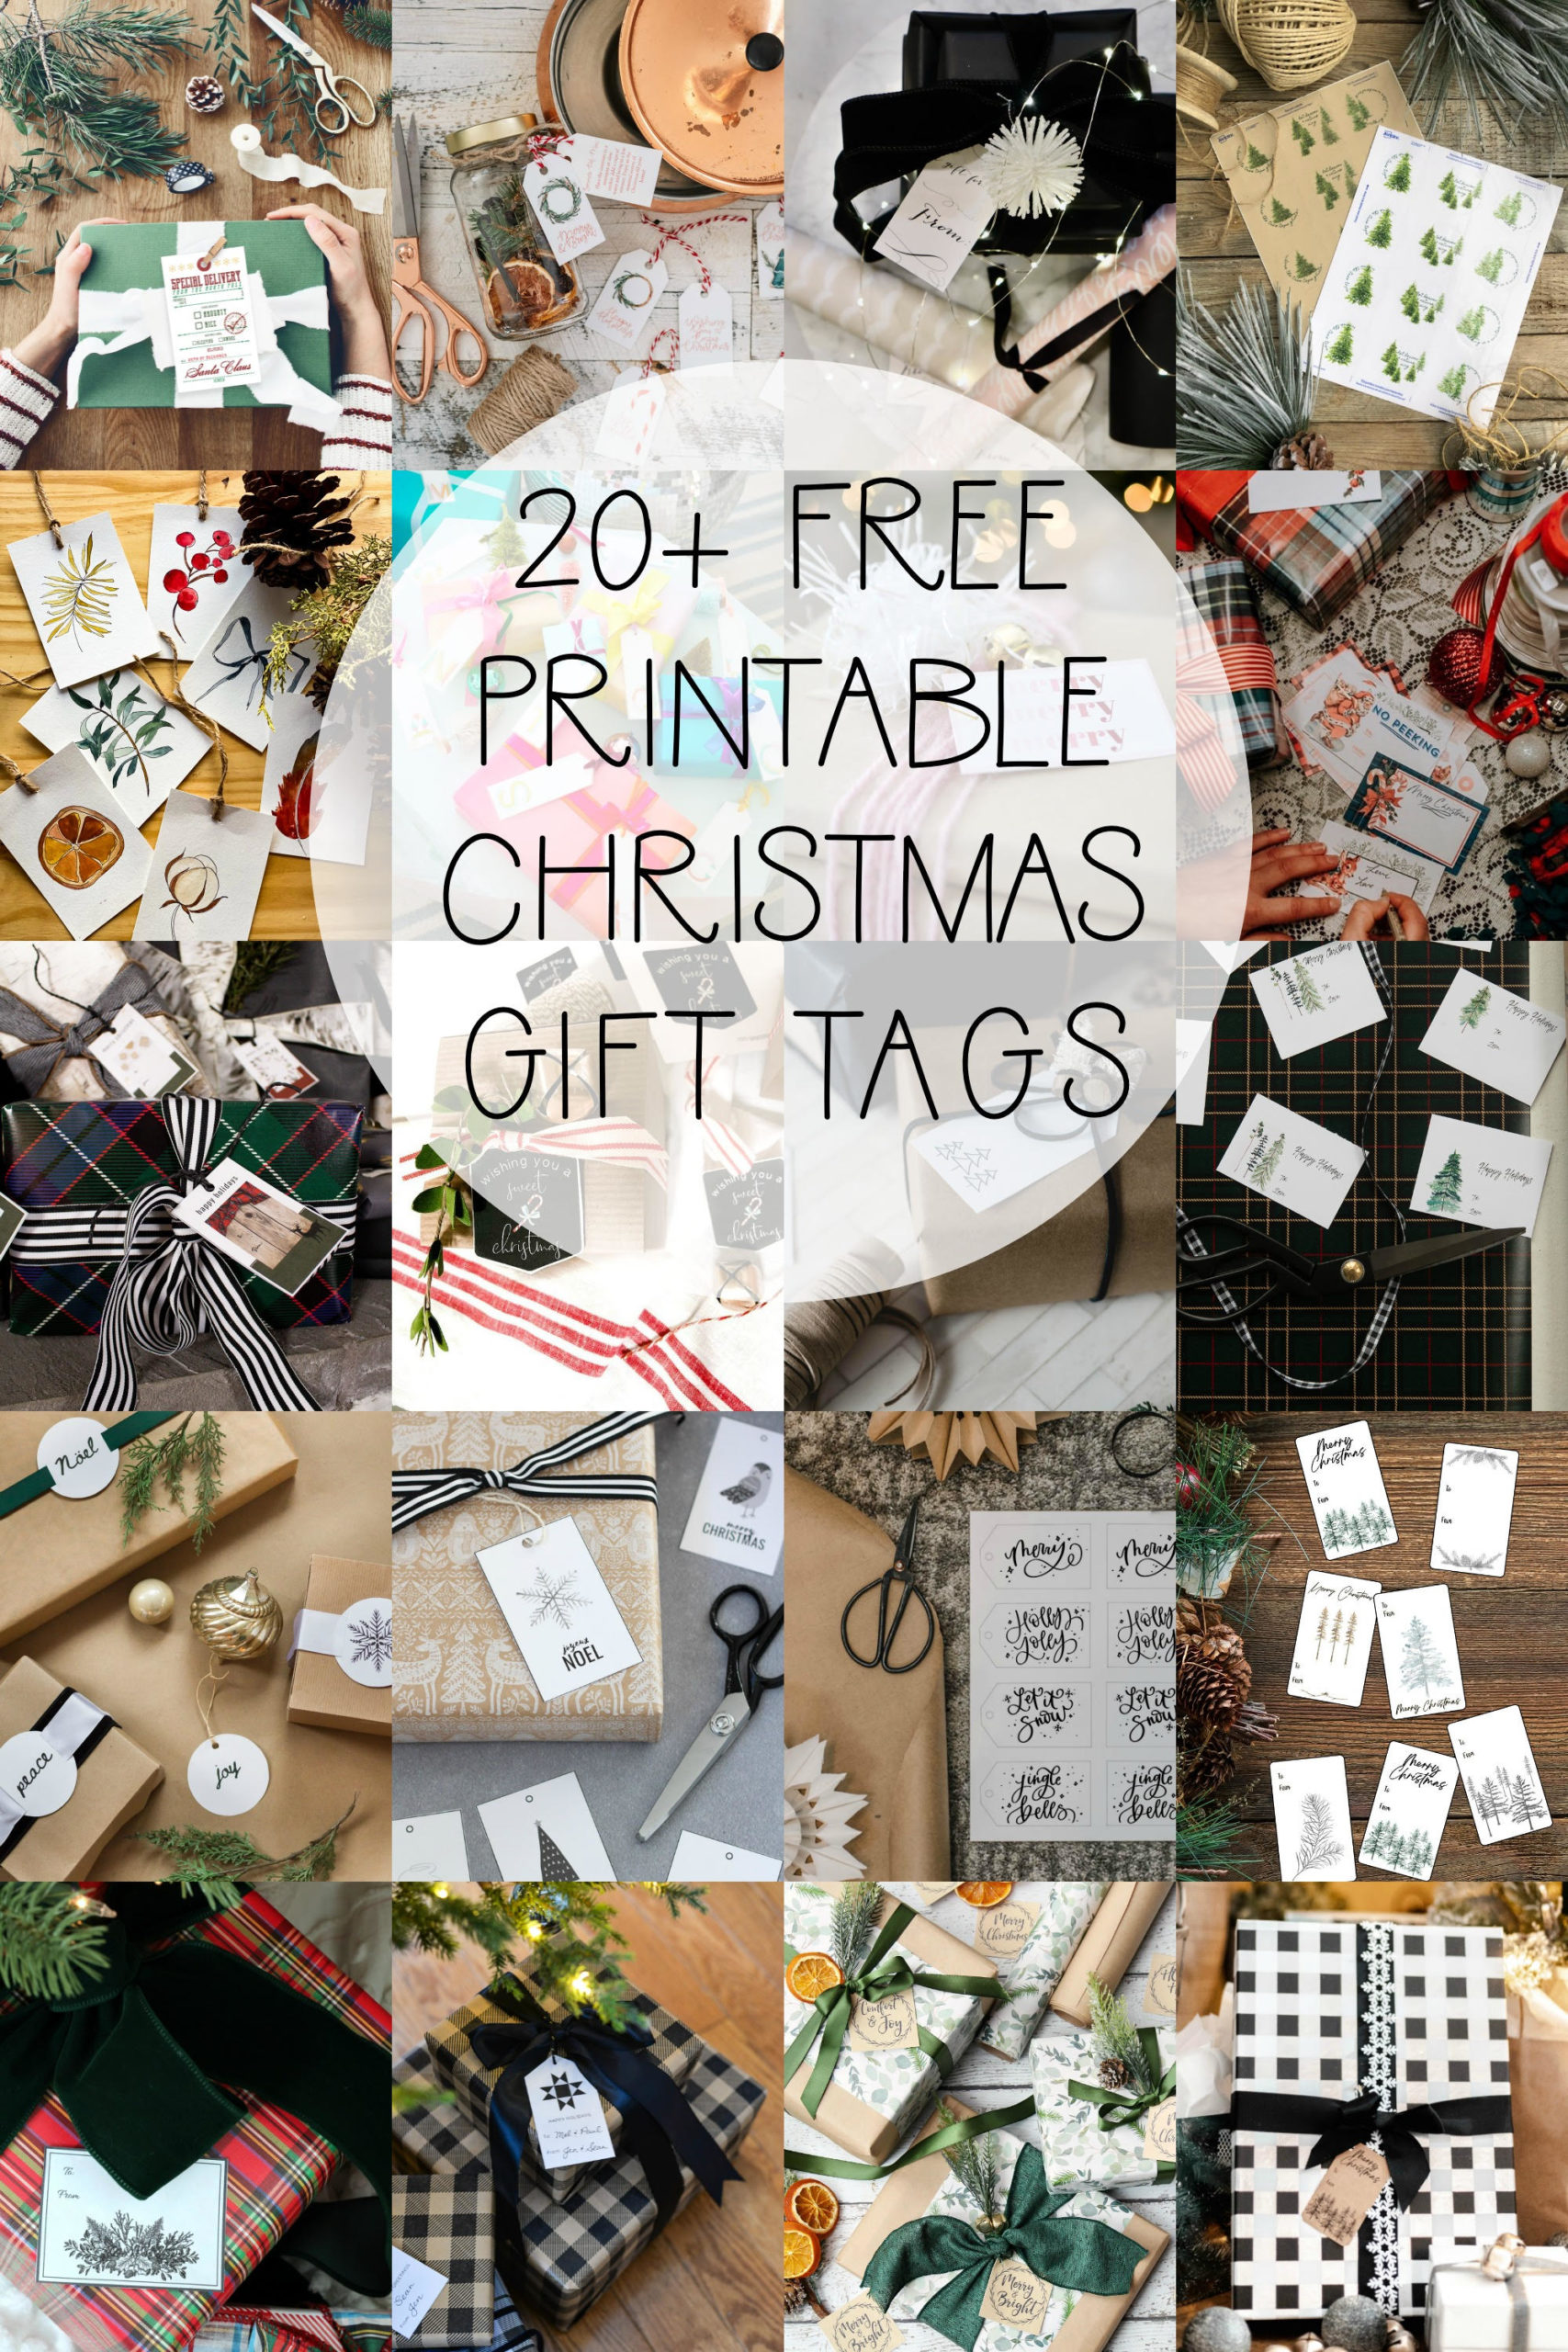 More than 20 Free Printable tags for the holidays!